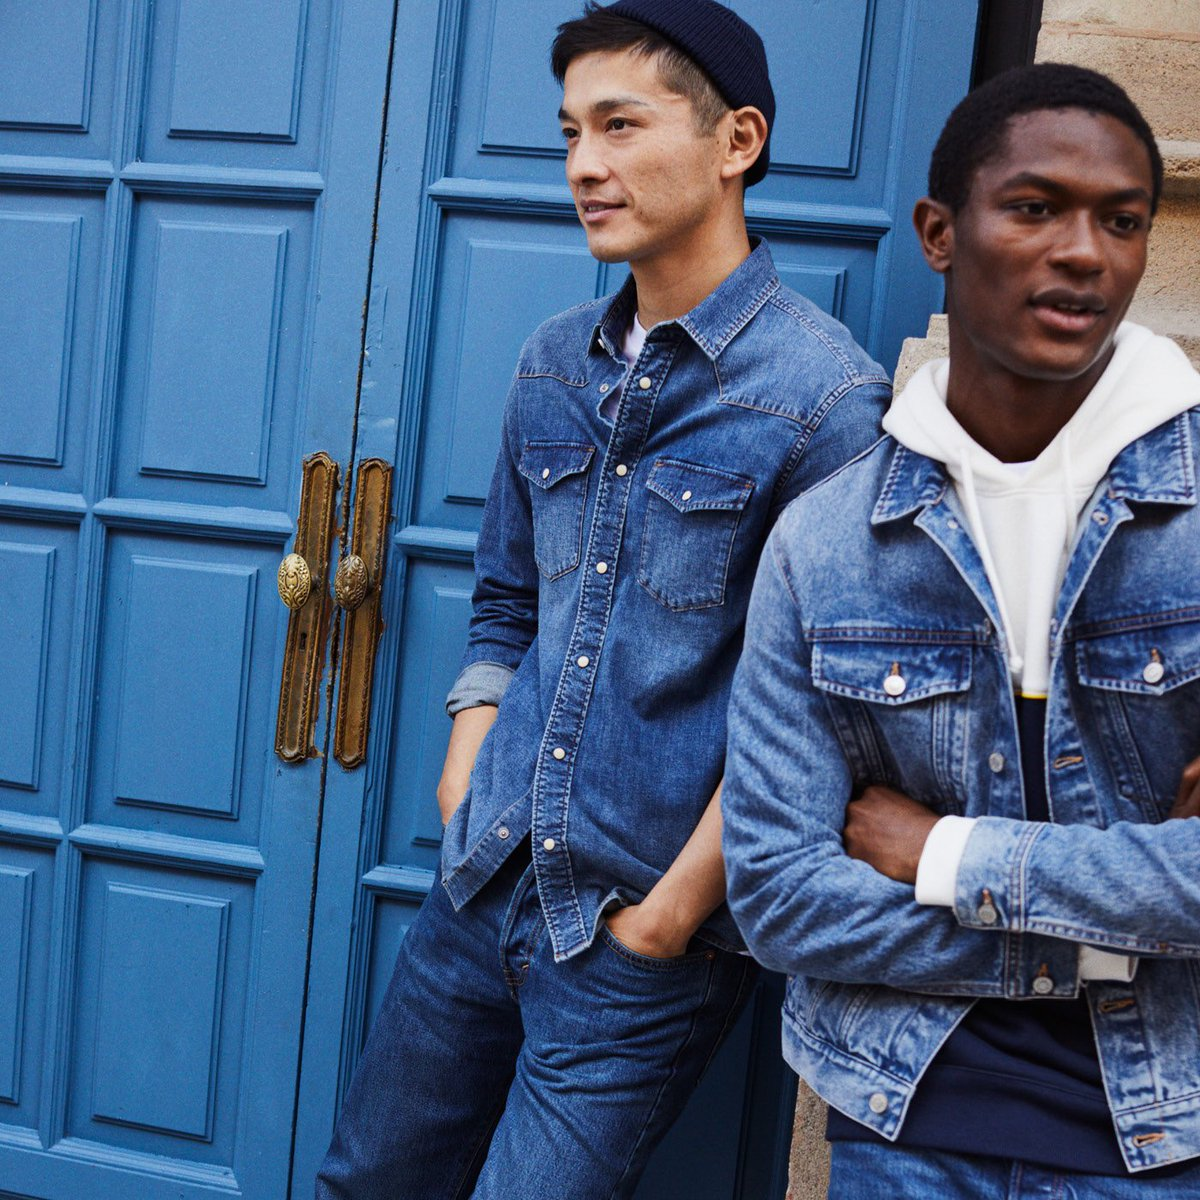 Looking for a fresh denim shirt or jacket? Get bot...